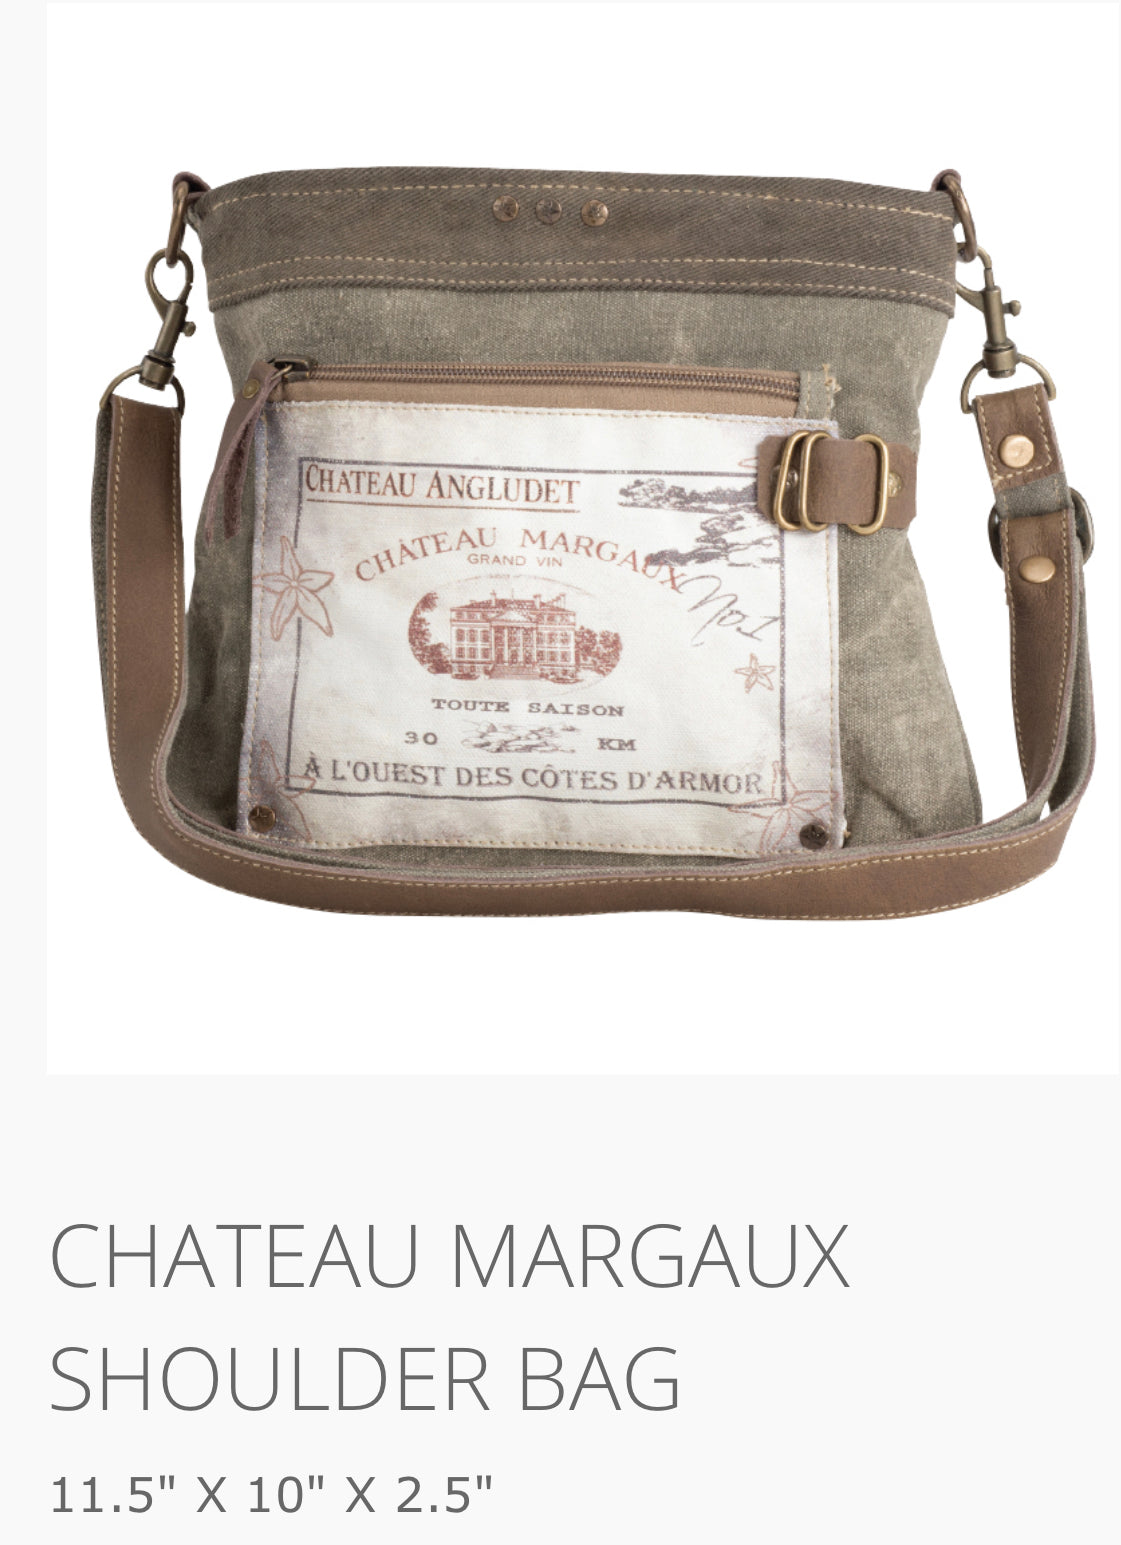 Chateau Margaux made from repurposed military tent and truck canvas - The Wall Kids, Inc.